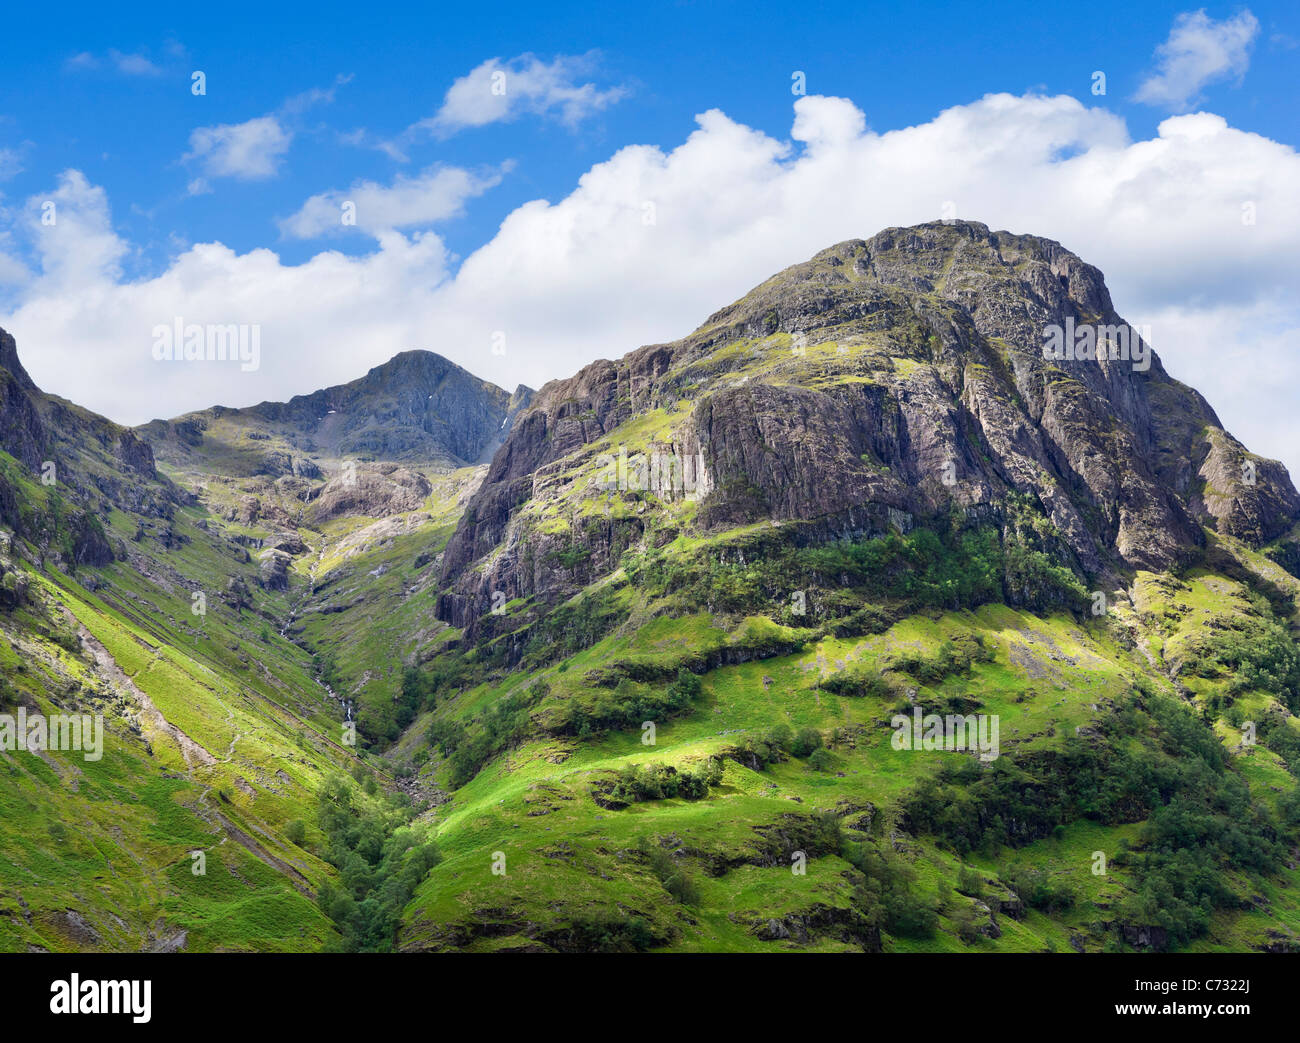 Stob Coire nan Lochan with Aonach Dubh to the right, Glen Coe, Scottish Highlands, Scotland, UK - Stock Image